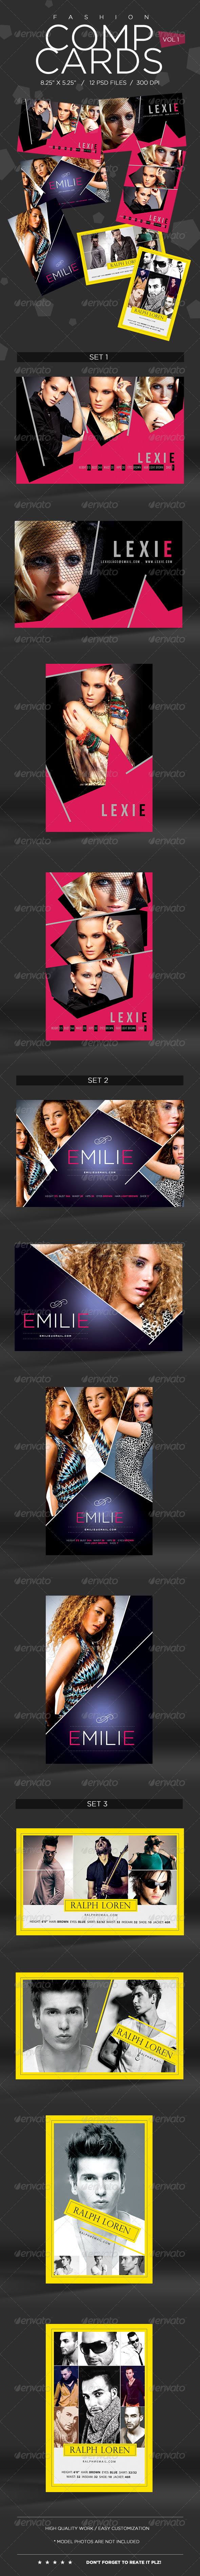 GraphicRiver Model Comp Card Template Kit Vol1 5749992